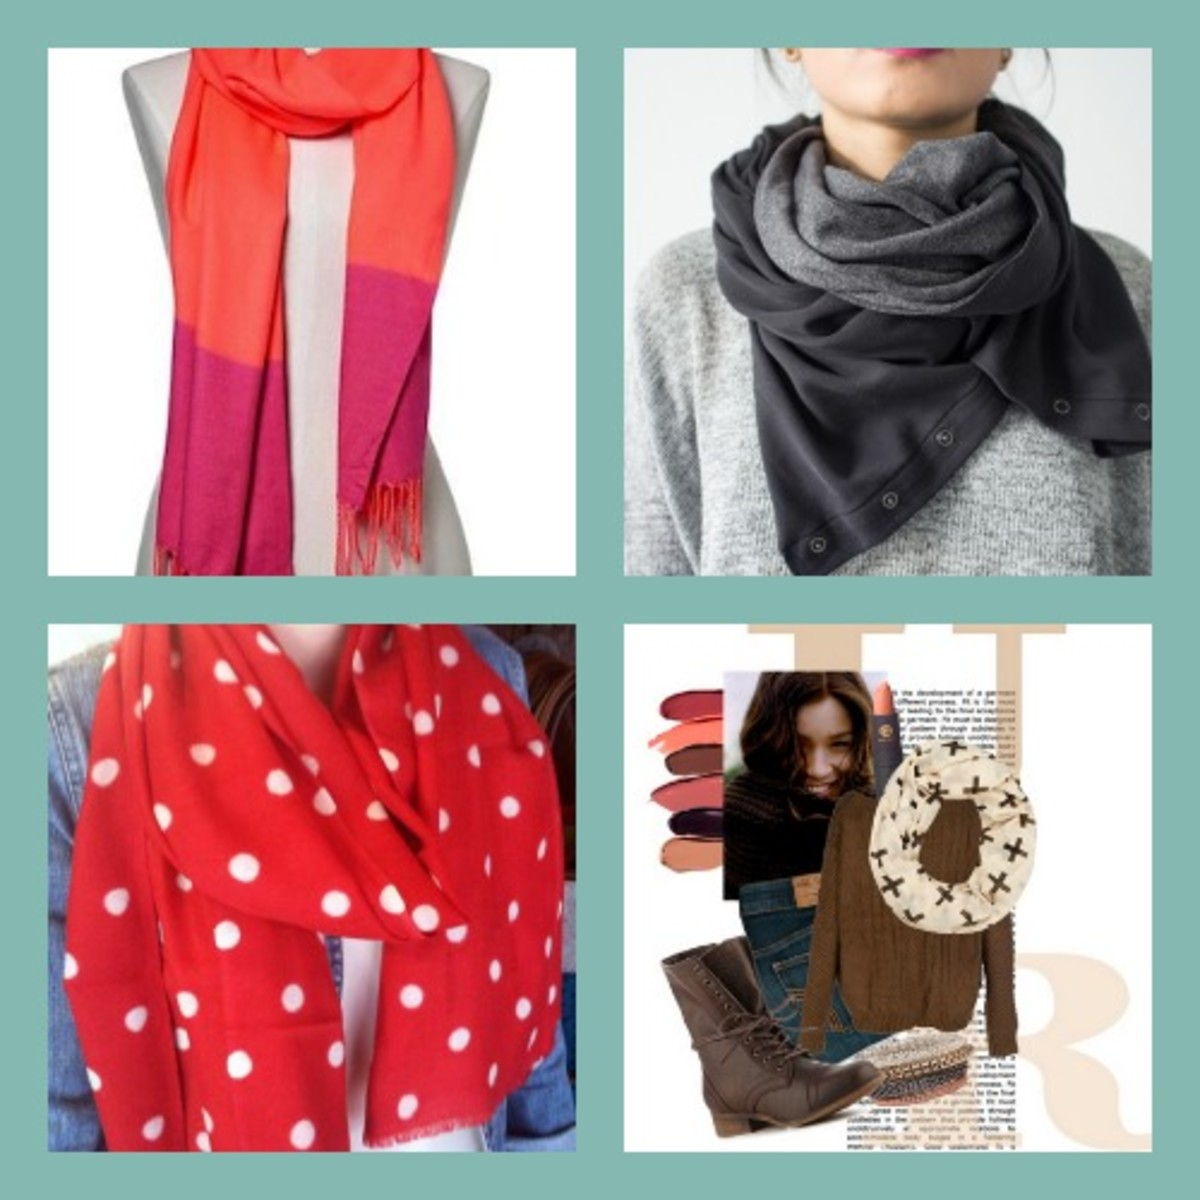 Momtrends reviews the latests scarves